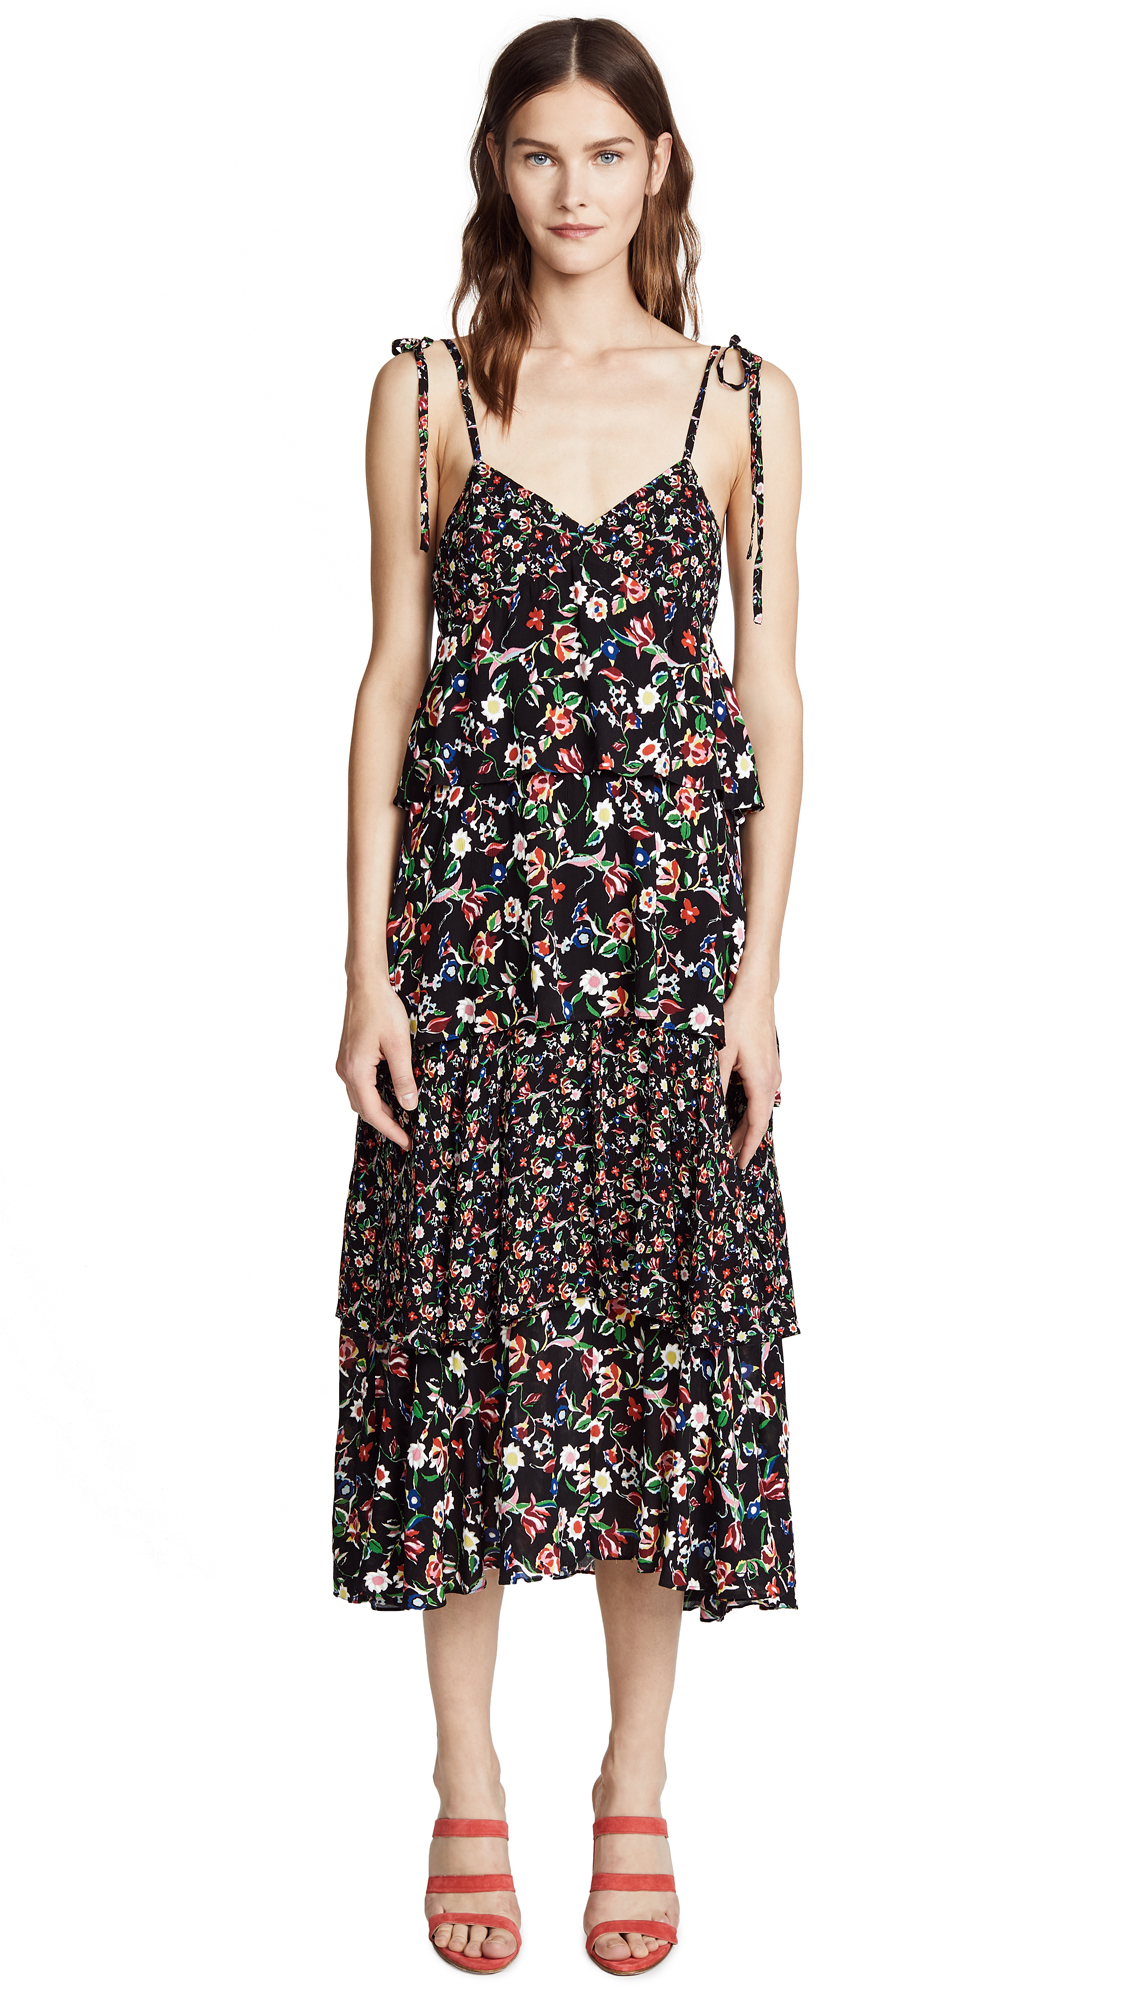 Club Monaco Suukyi Dress In Soot Black Multi